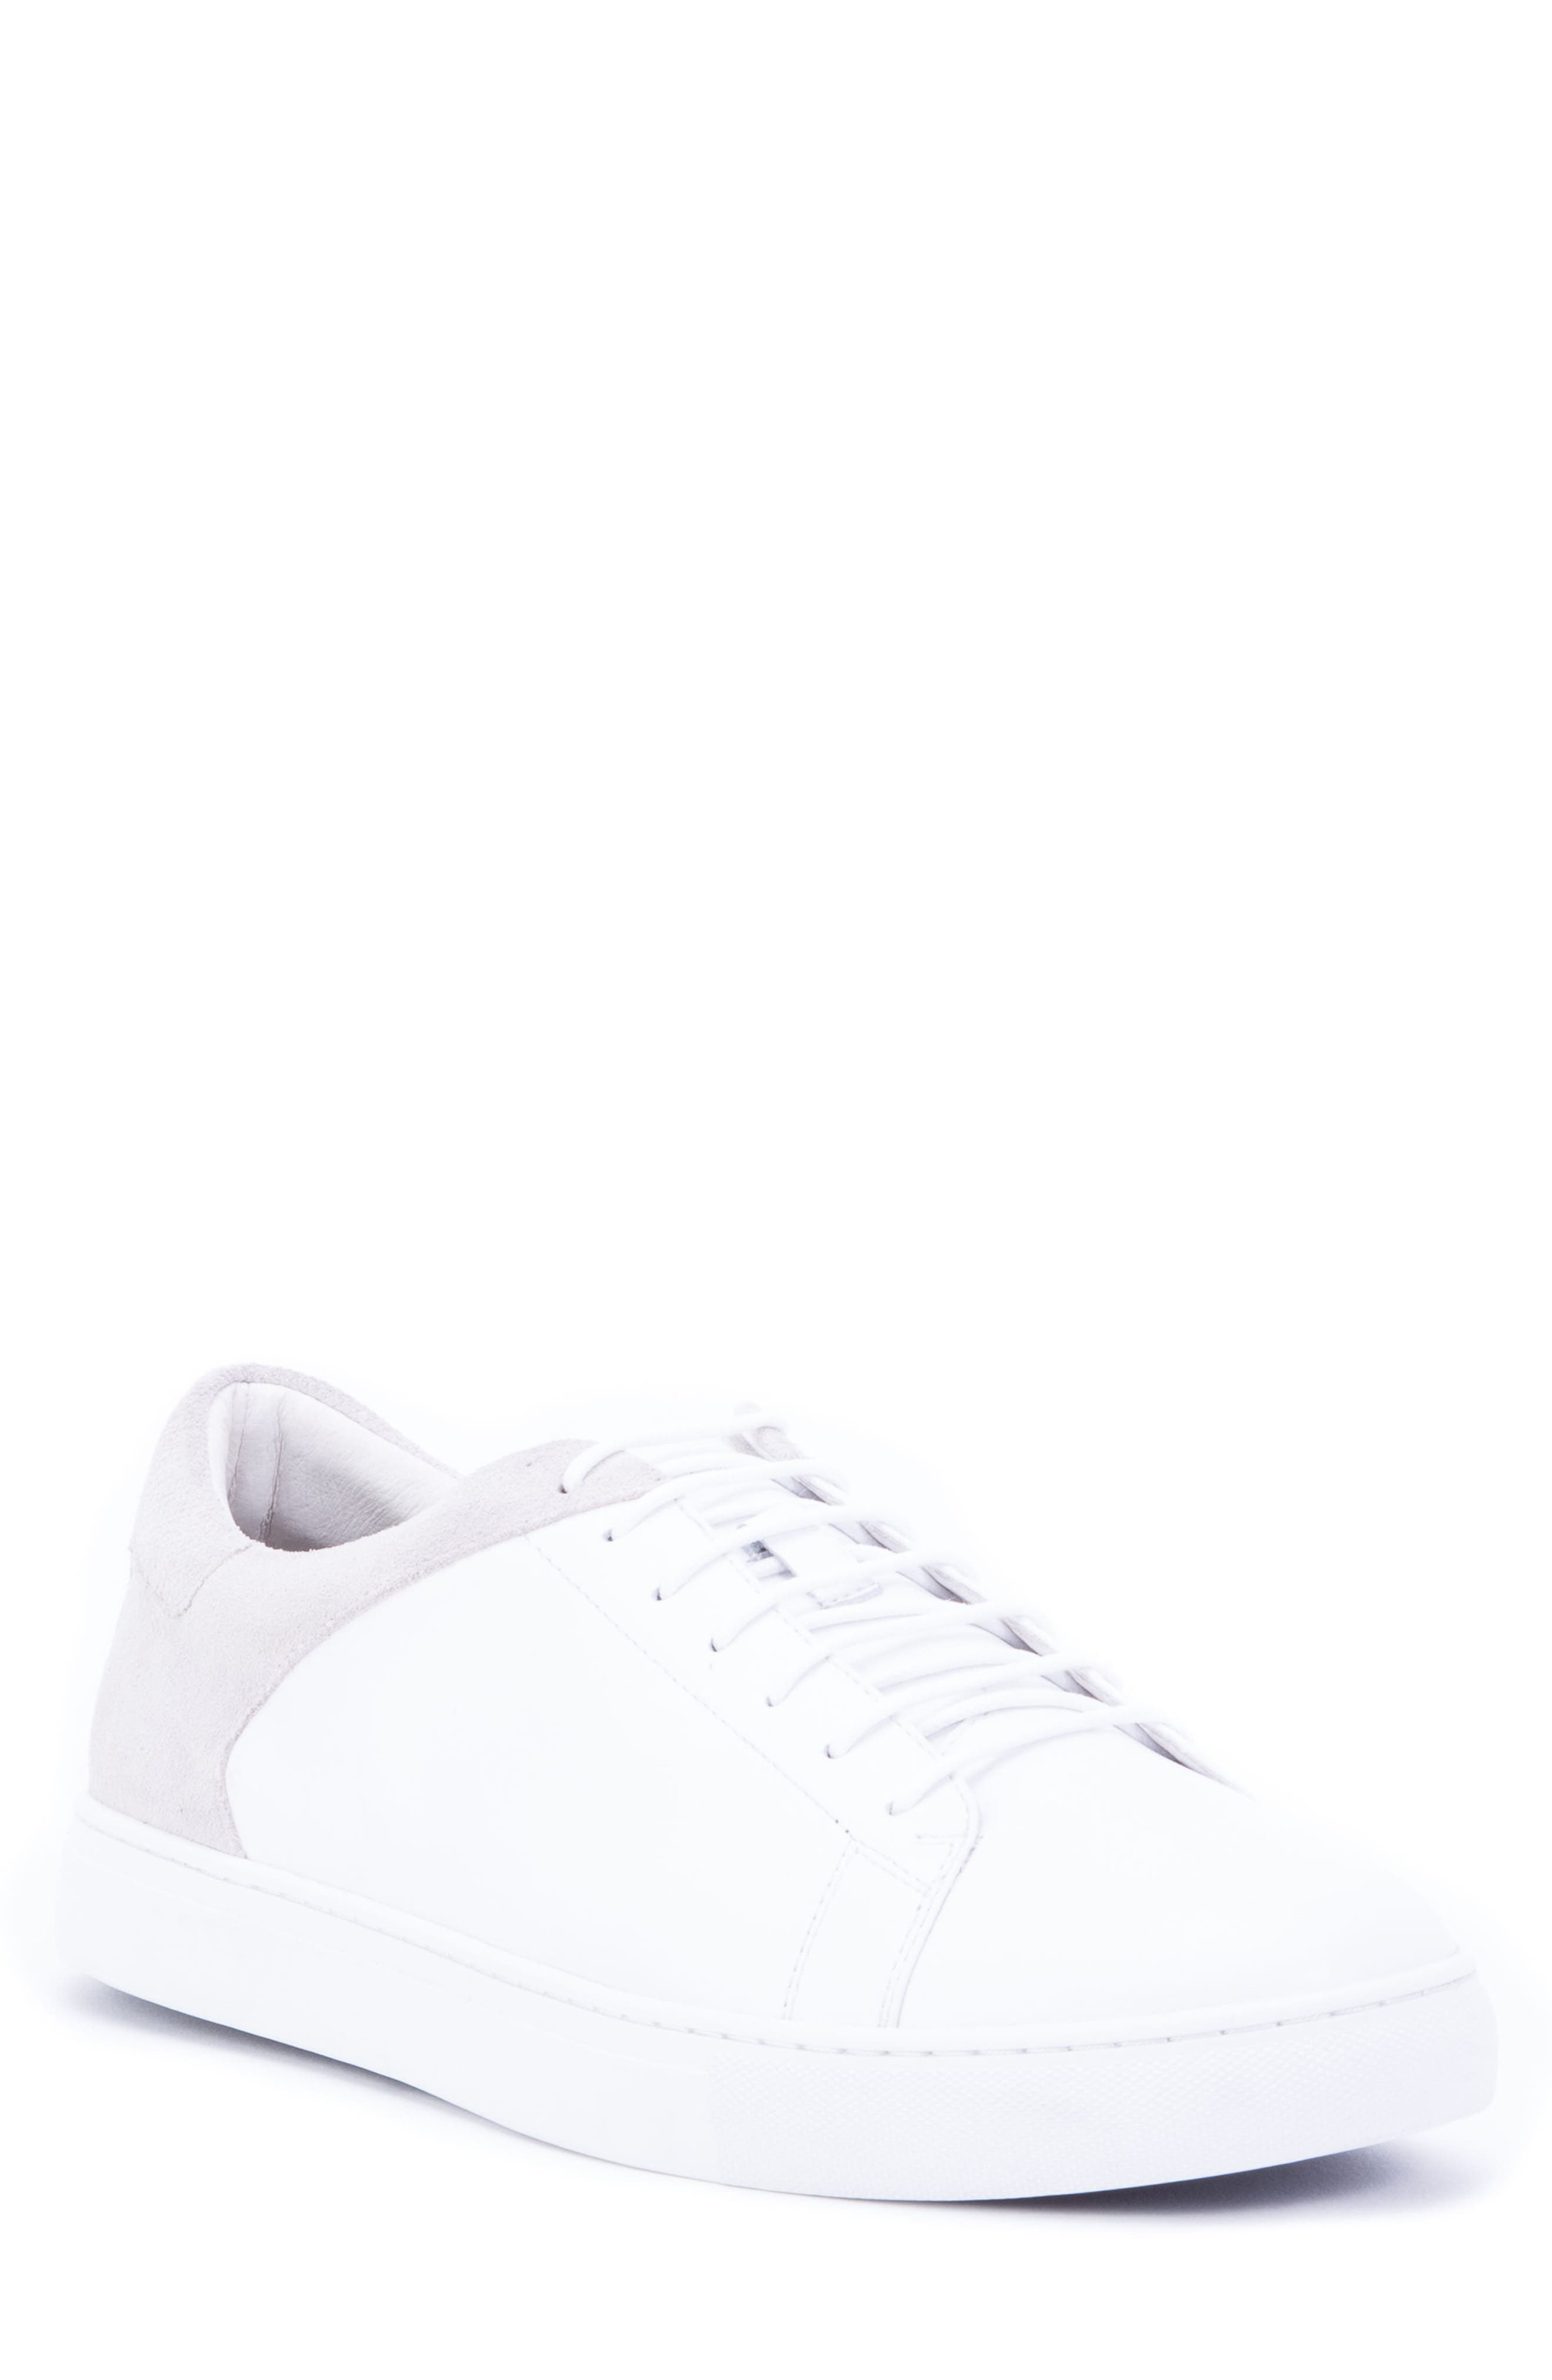 Cue Low Top Sneaker,                             Main thumbnail 1, color,                             WHITE LEATHER/ SUEDE